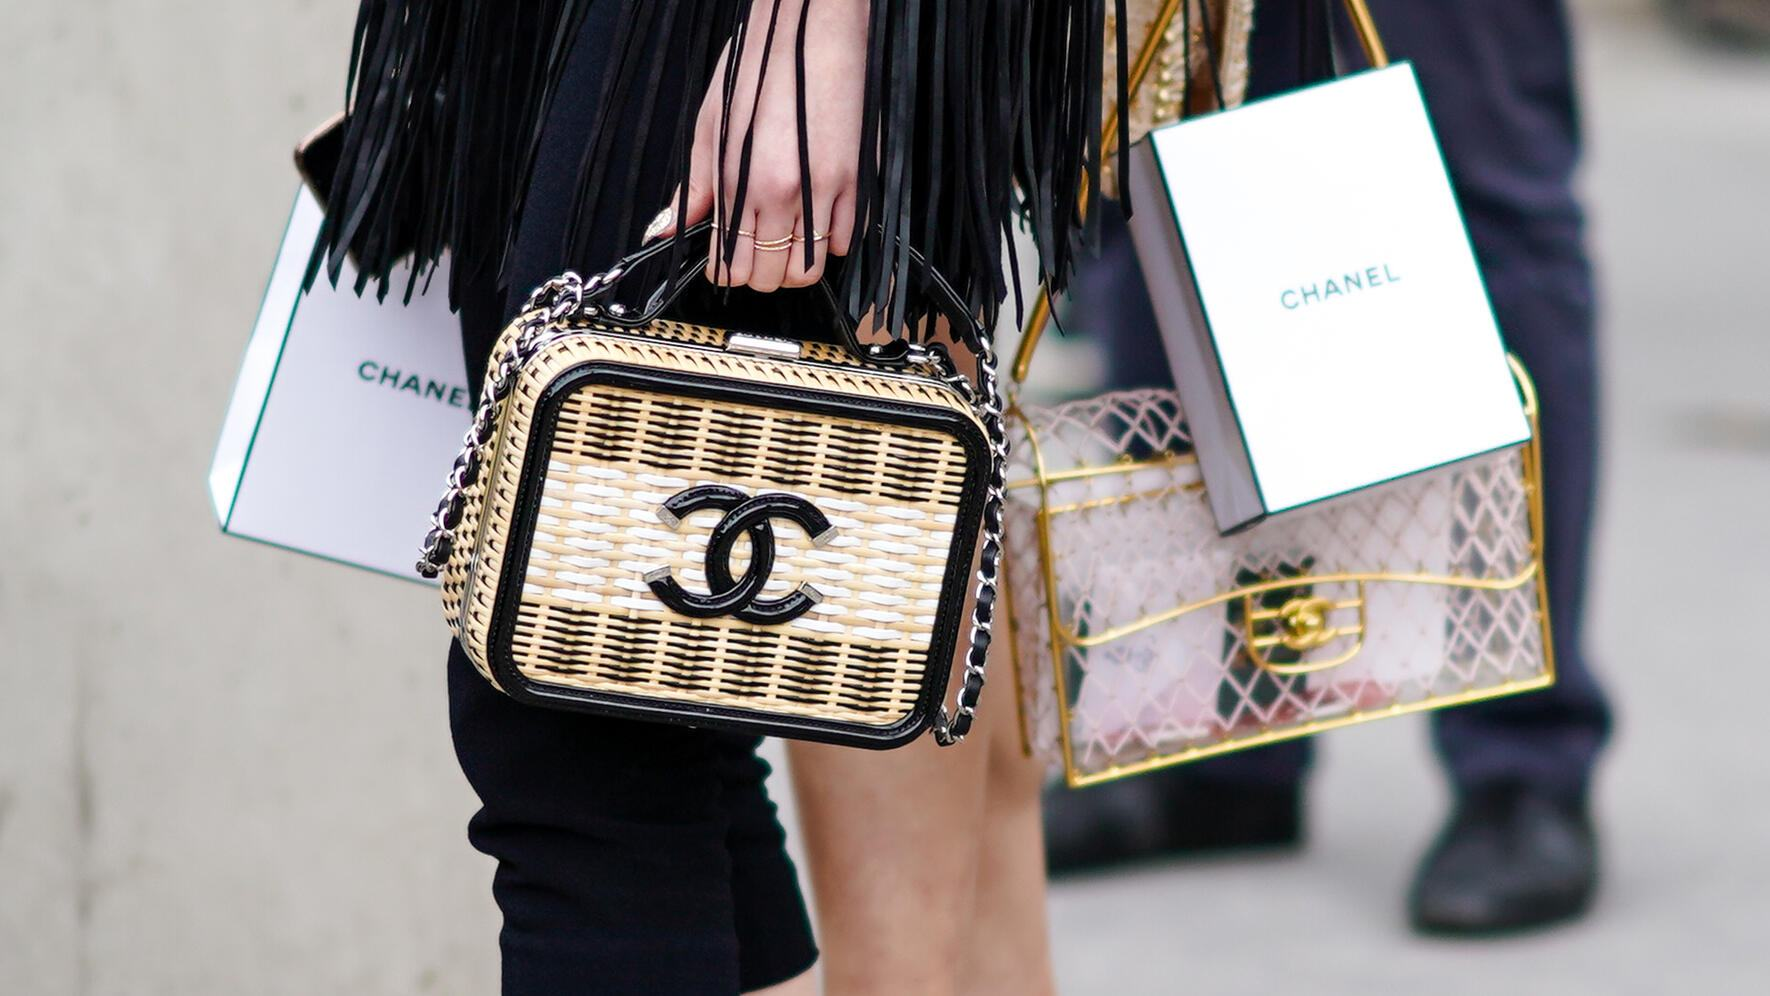 PARIS, FRANCE - MAY 03: A guest wears a Chanel vanity bag,  outside the Chanel Cruise Collection 2020  At Grand Palais on May 03, 2019 in Paris, France. (Photo by Edward Berthelot/Getty Images )